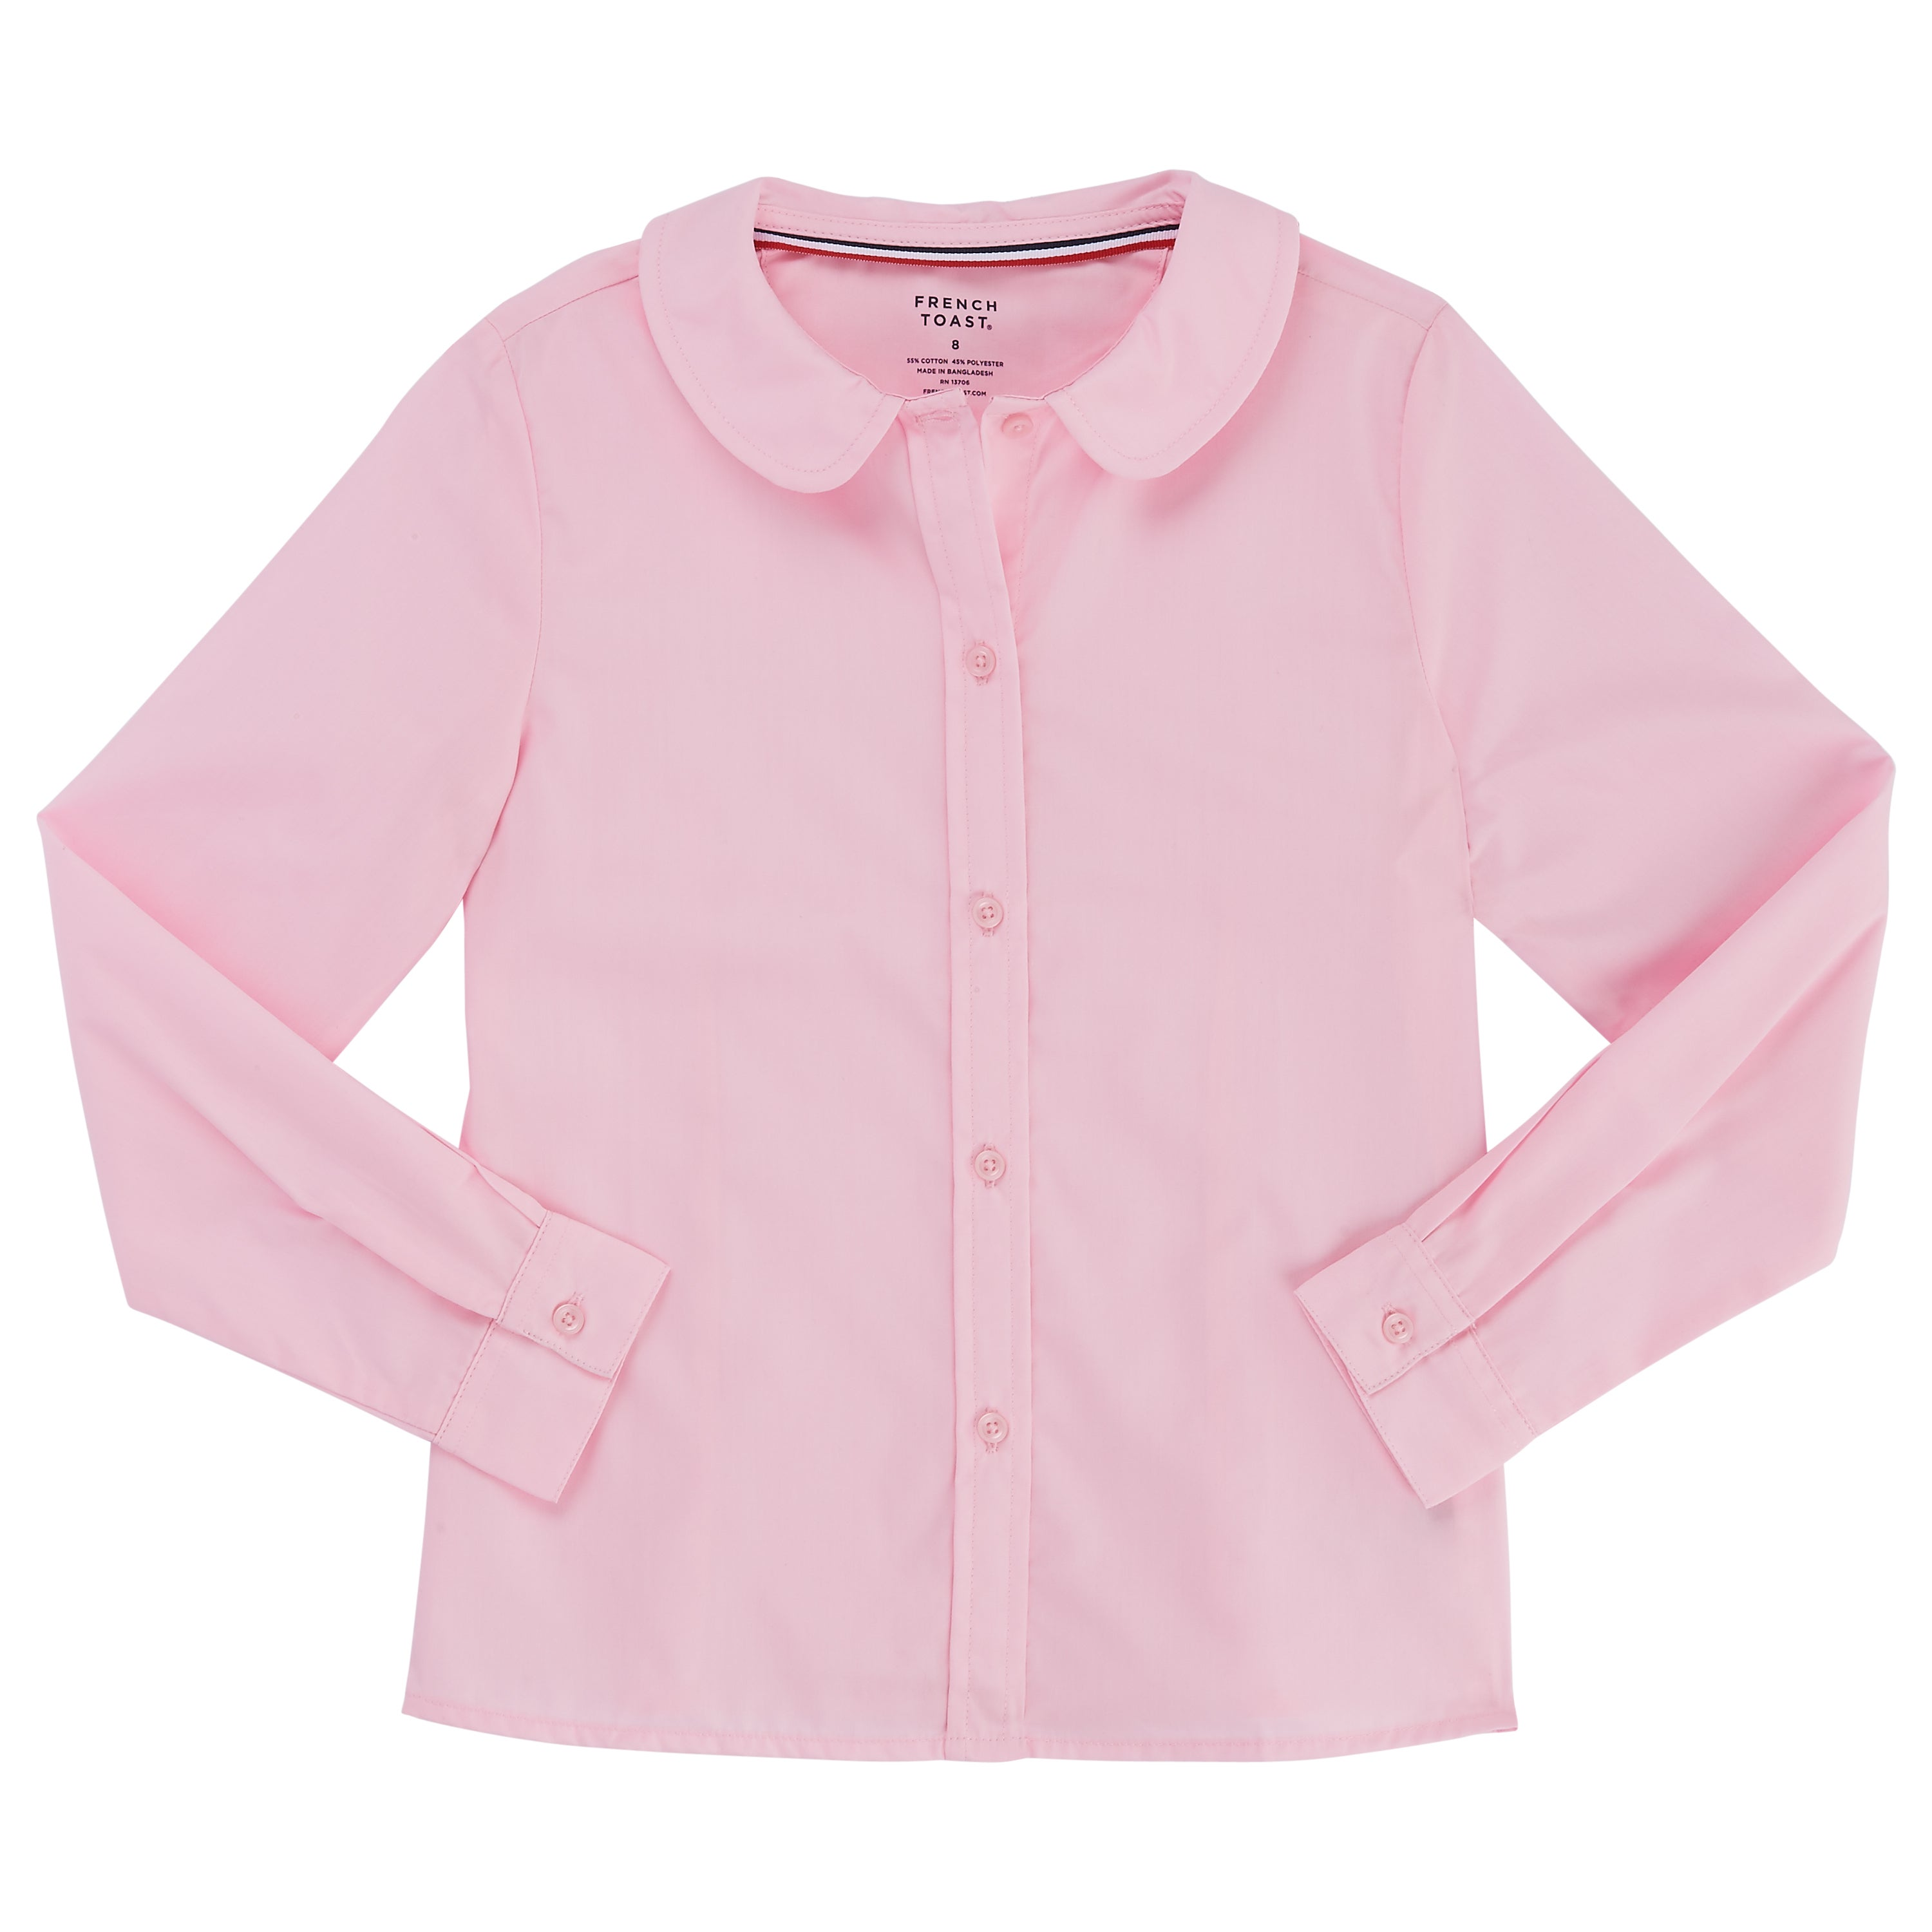 57c82579f0d2a7 Shop French Toast Girls' Long-sleeve Modern Peter Pan Blouse - Free  Shipping On Orders Over $45 - Overstock - 14153924